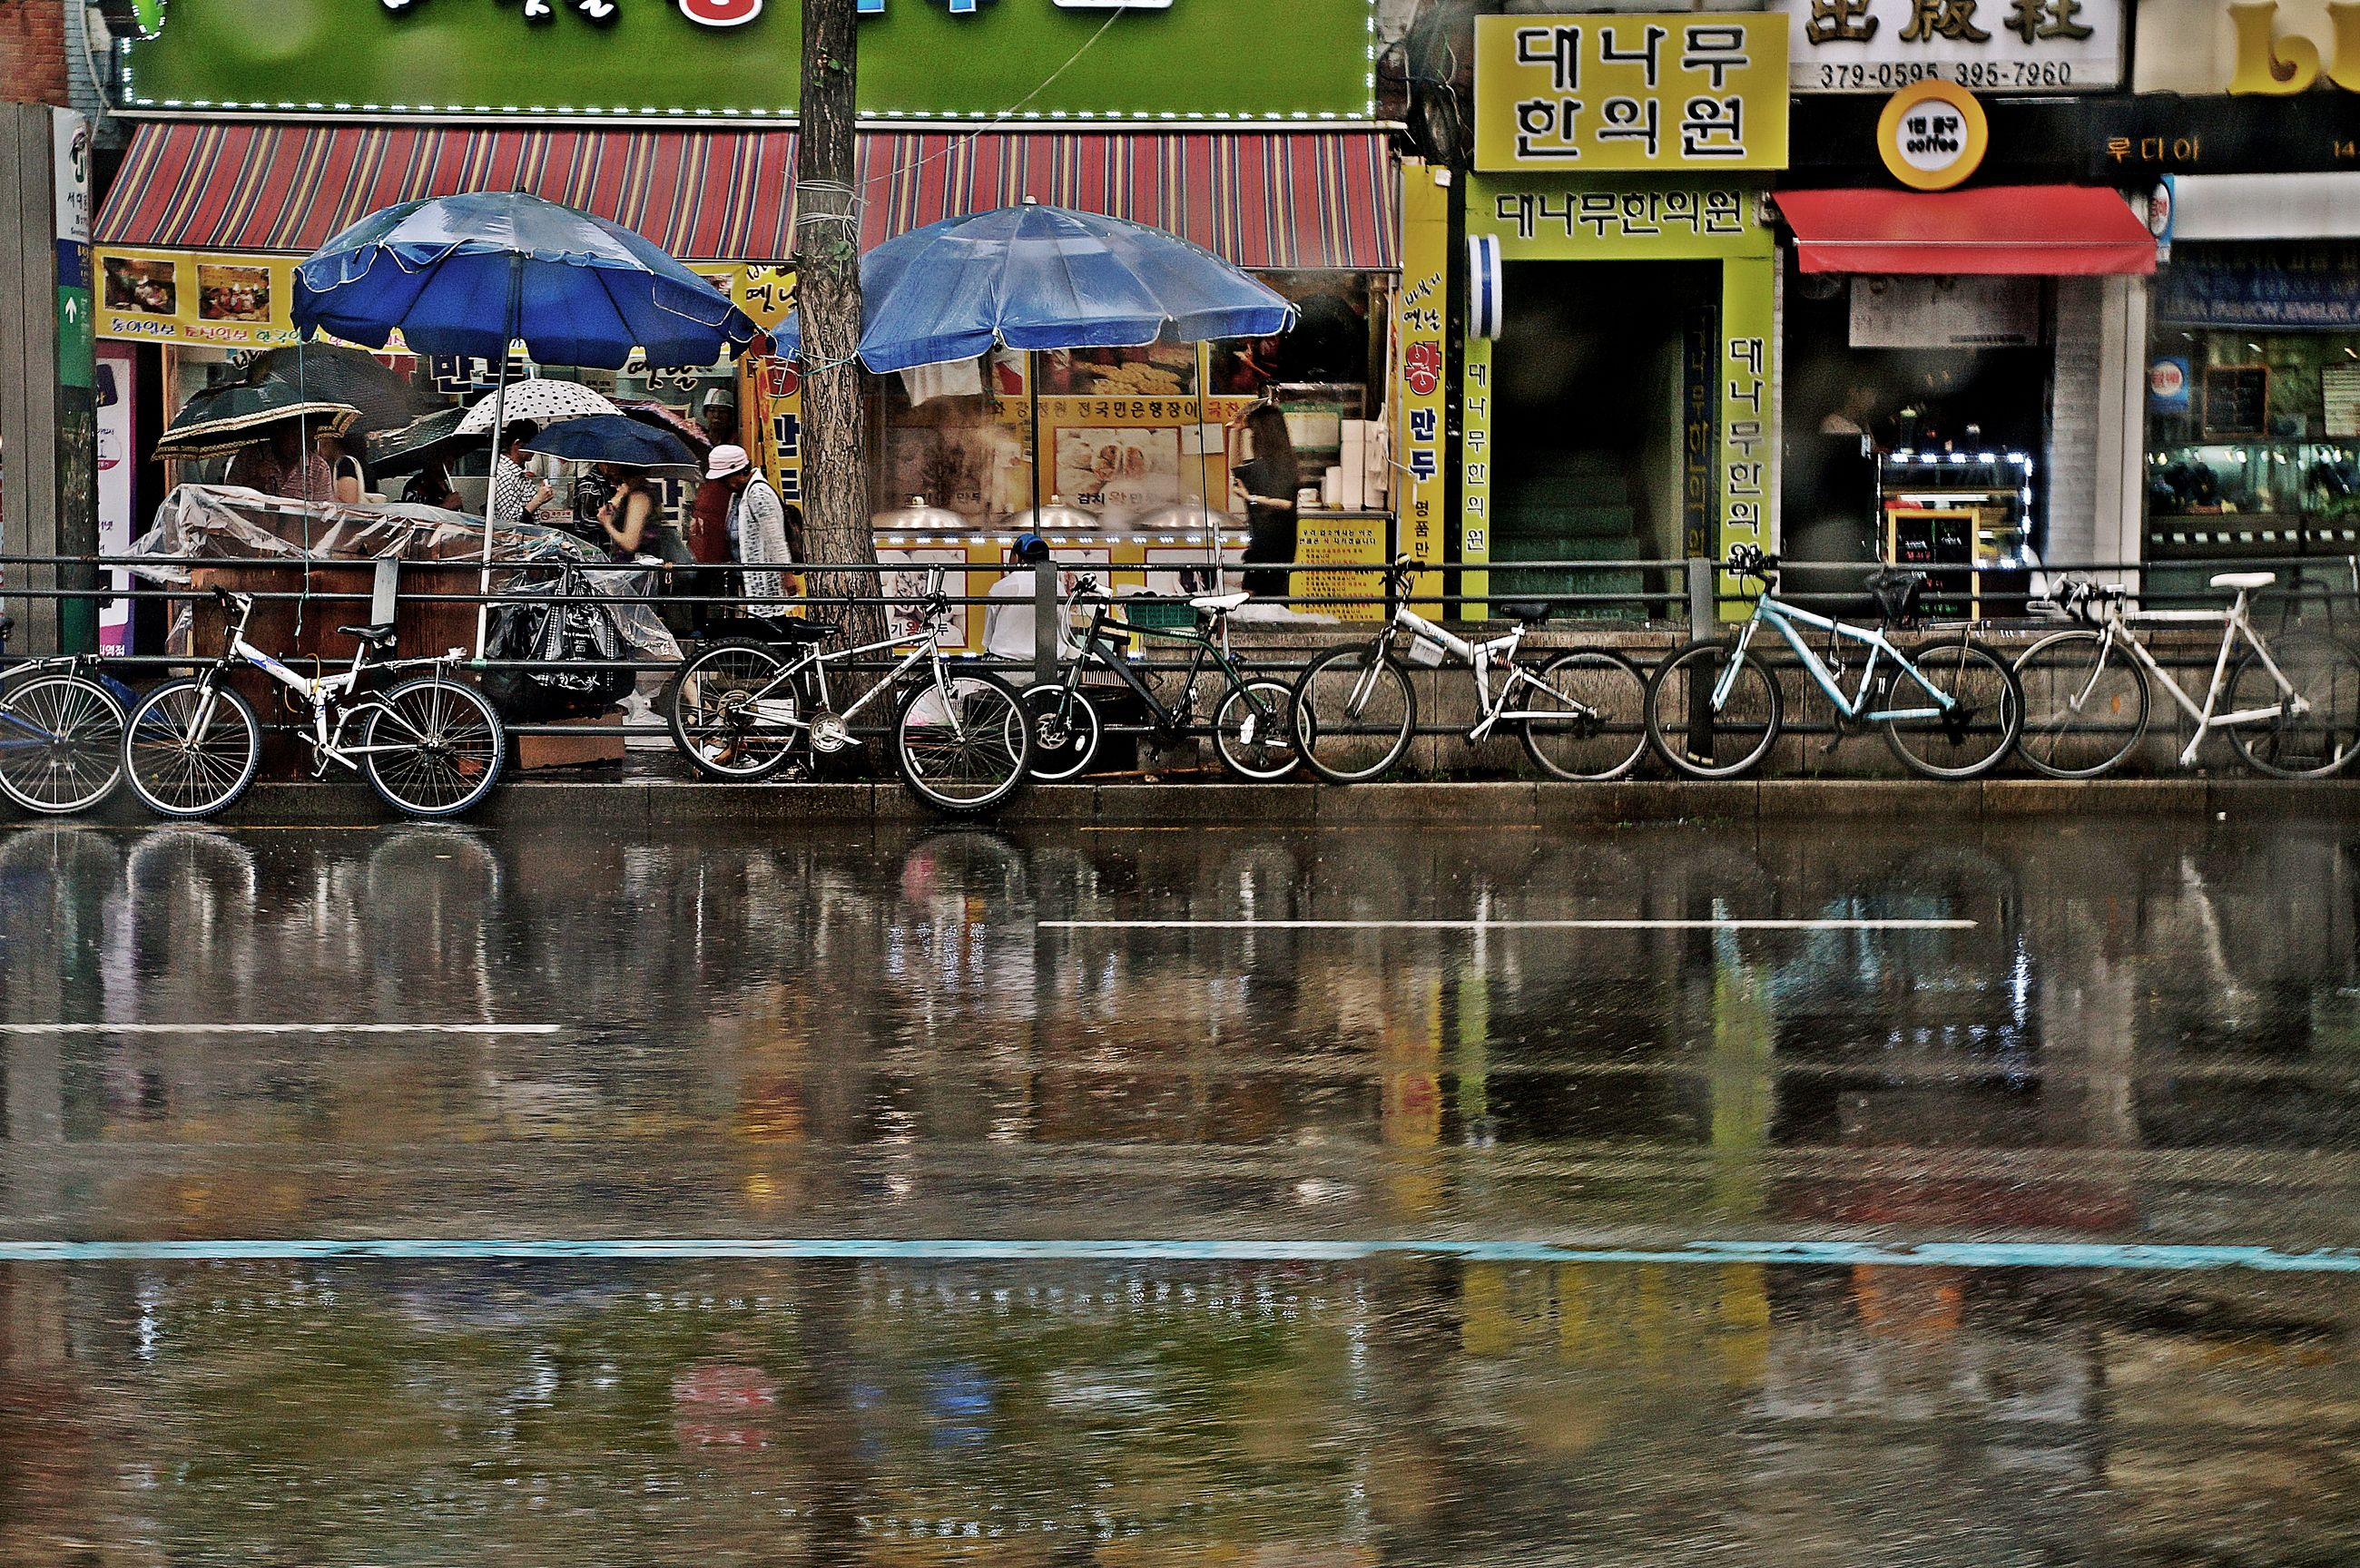 water, bicycle, rainy season, reflection, wet, protection, day, transportation, outdoors, land vehicle, text, no people, architecture